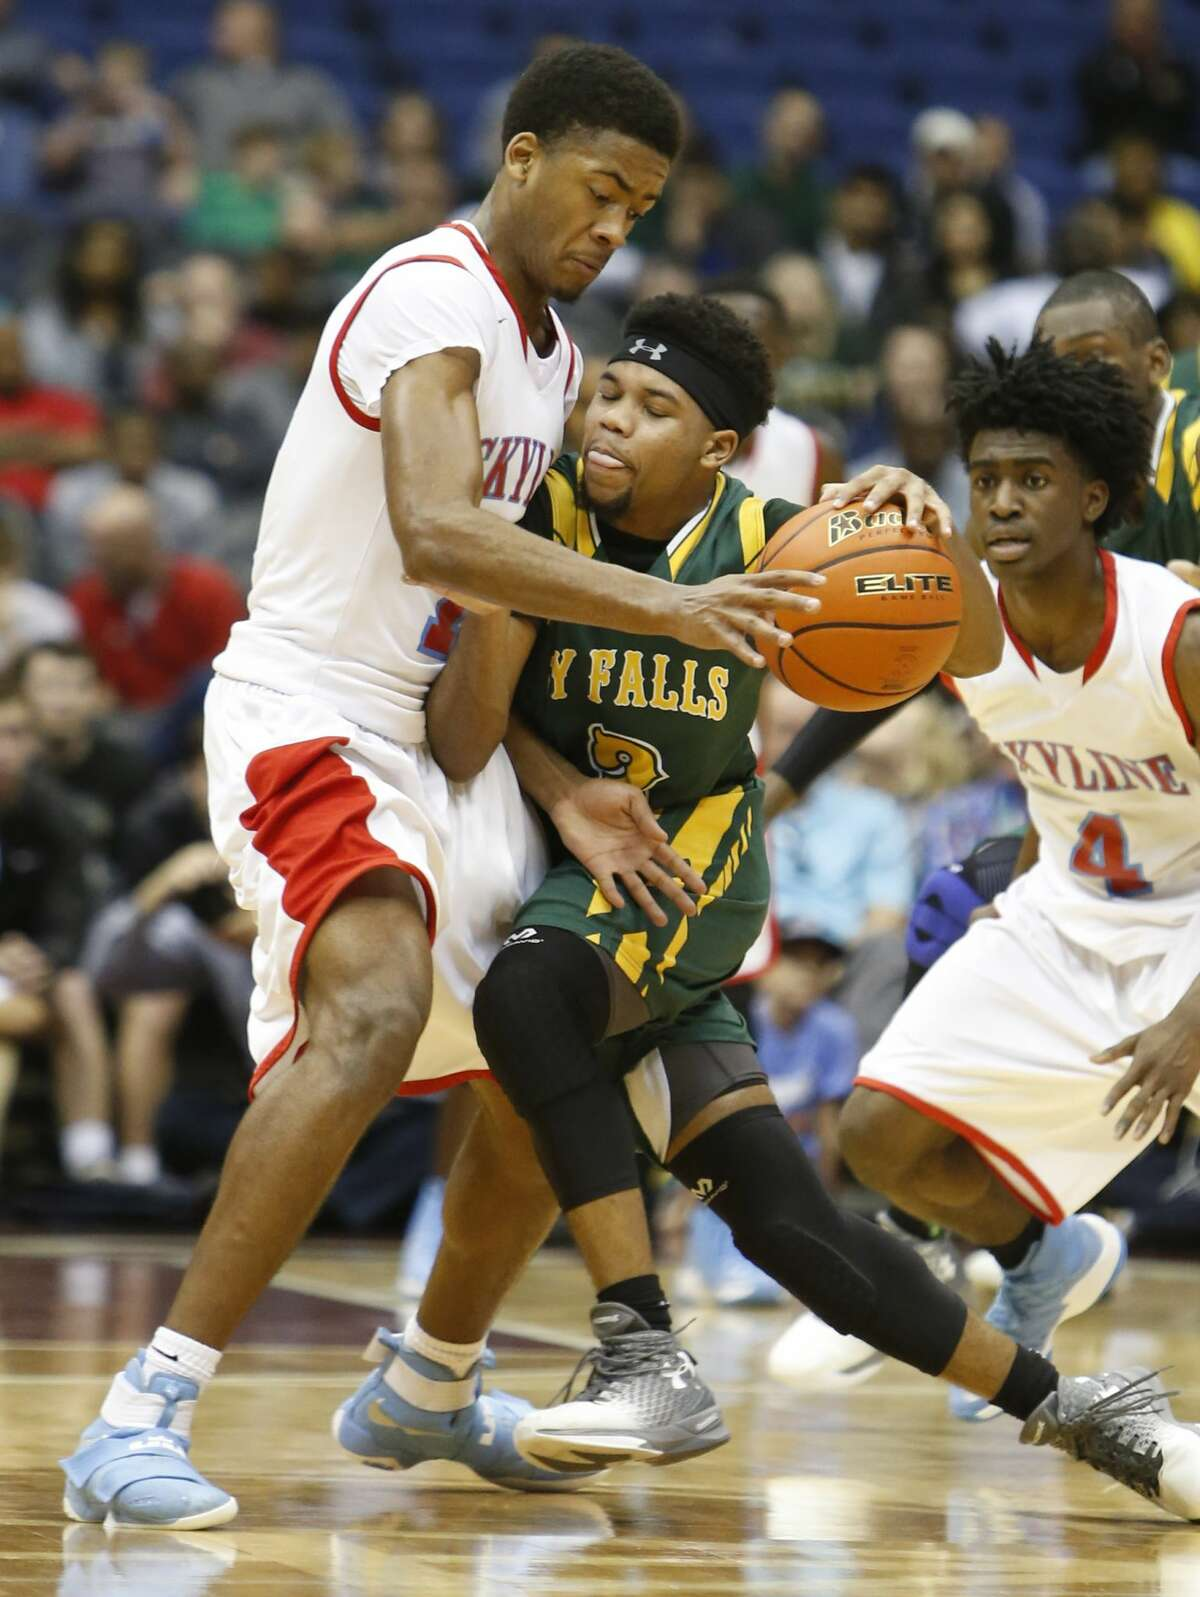 Dallas Skyline?•s Terreon Randolph (11) tries to trap Cypress Falls?•s Trajan Wesley (3) from UIL Class 6A boys basketball semifinal between Skyline and Cypress Falls on Friday, March 10, 2017 at the Alamodome. (Ronald Cortes/Special Contributor)